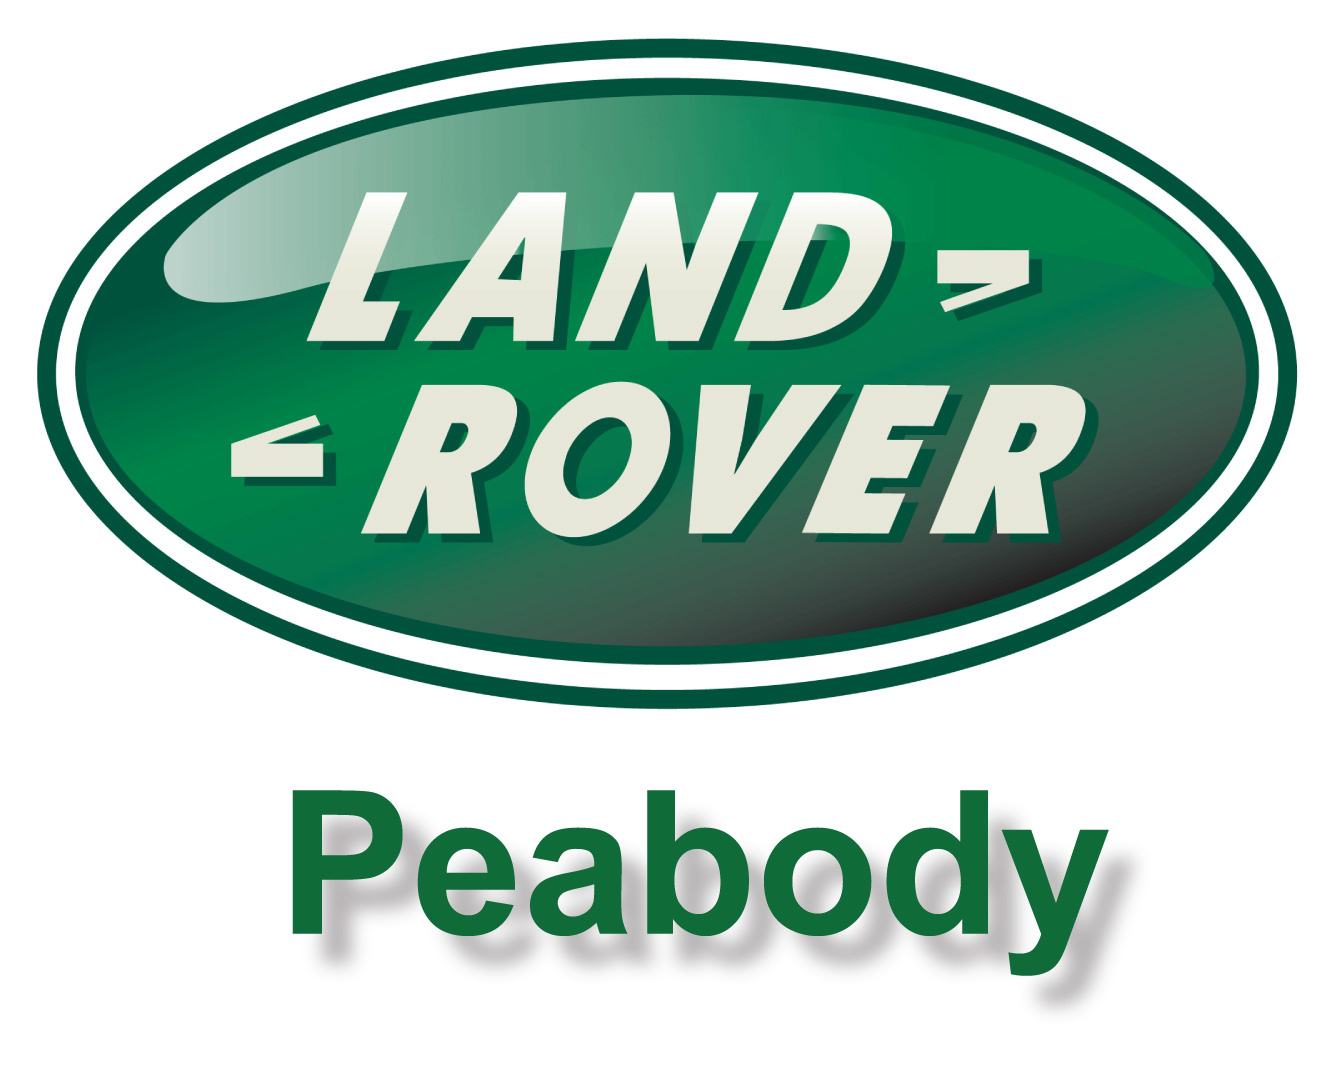 Range Rover Peabody >> Land Rover Peabody Peabody Ma Read Consumer Reviews Browse Used